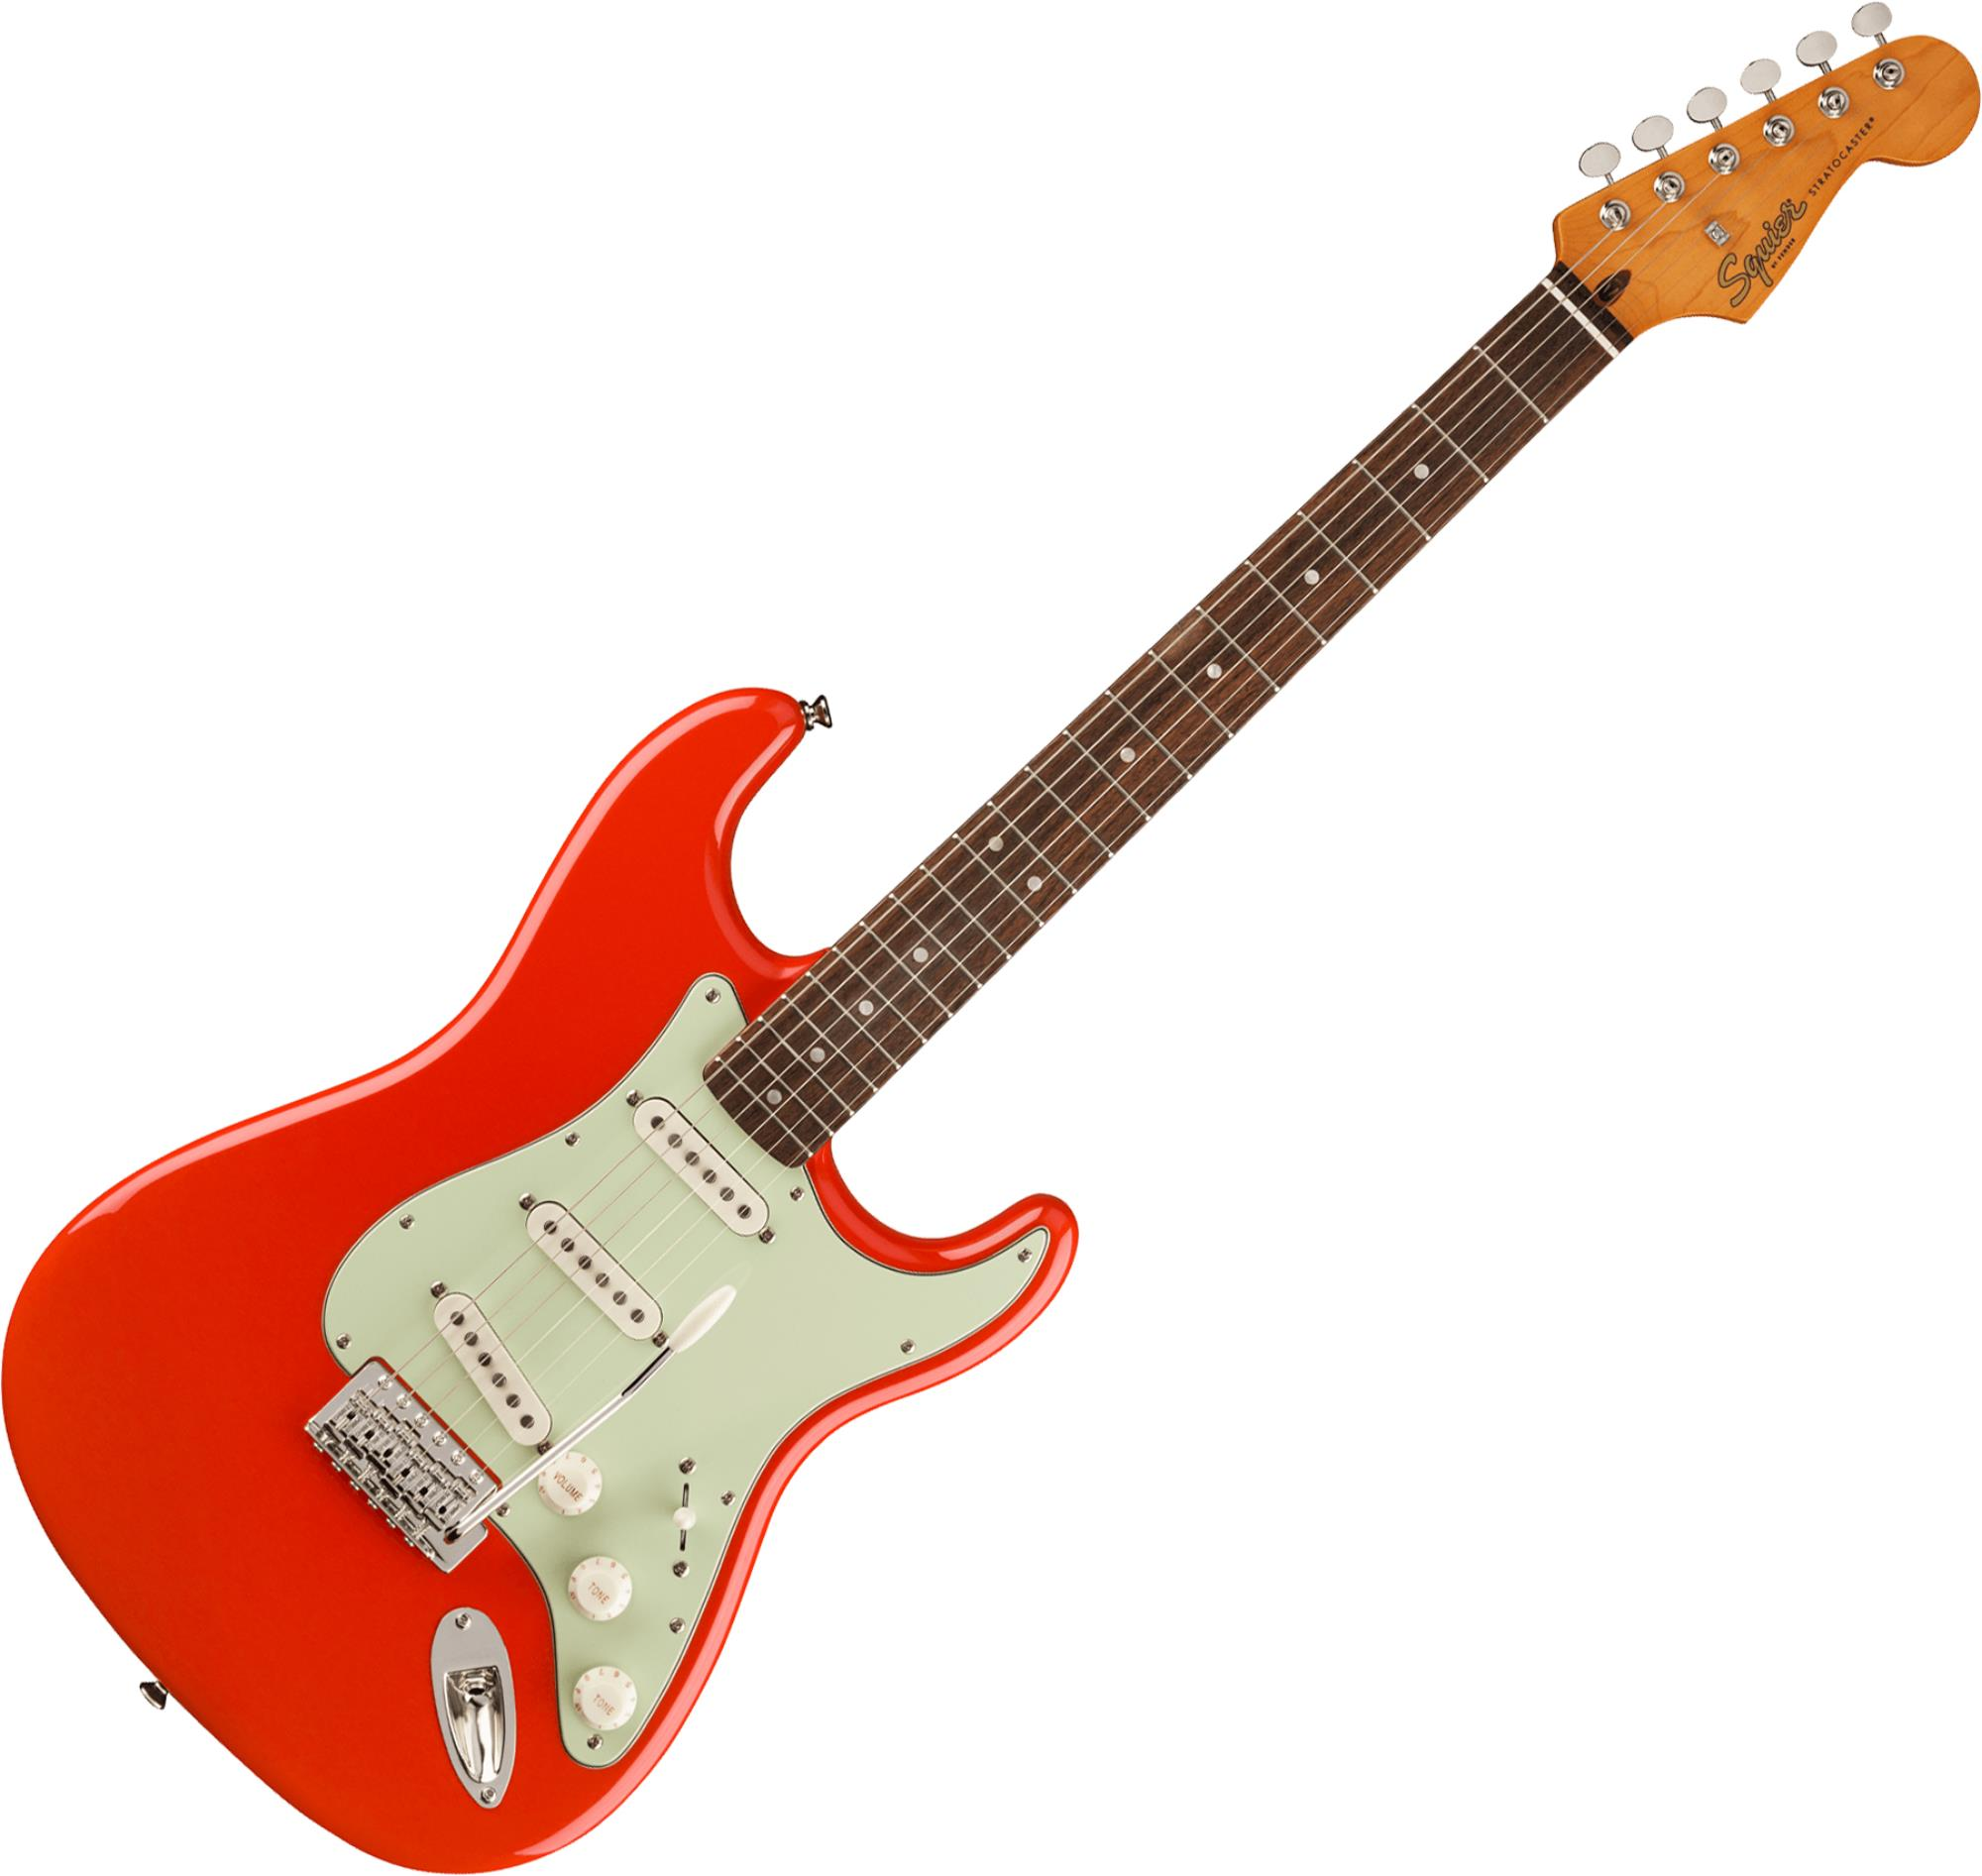 SQUIER FSR Classic Vibe 60s Stratocaster LF Mint Pickguard -  Fiesta Red - LIMITED EDITION 0374011540